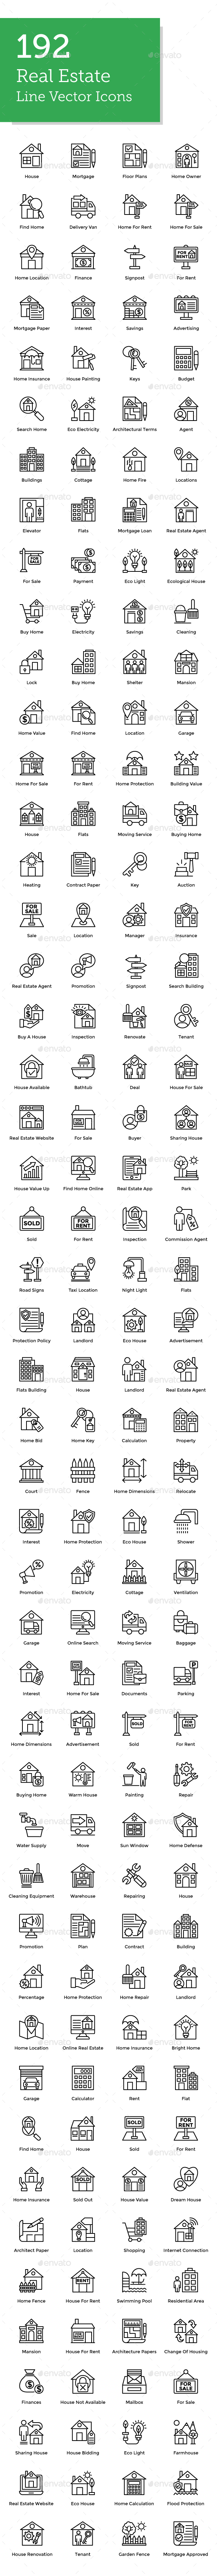 GraphicRiver 192 Real Estate Line Icons 21179723